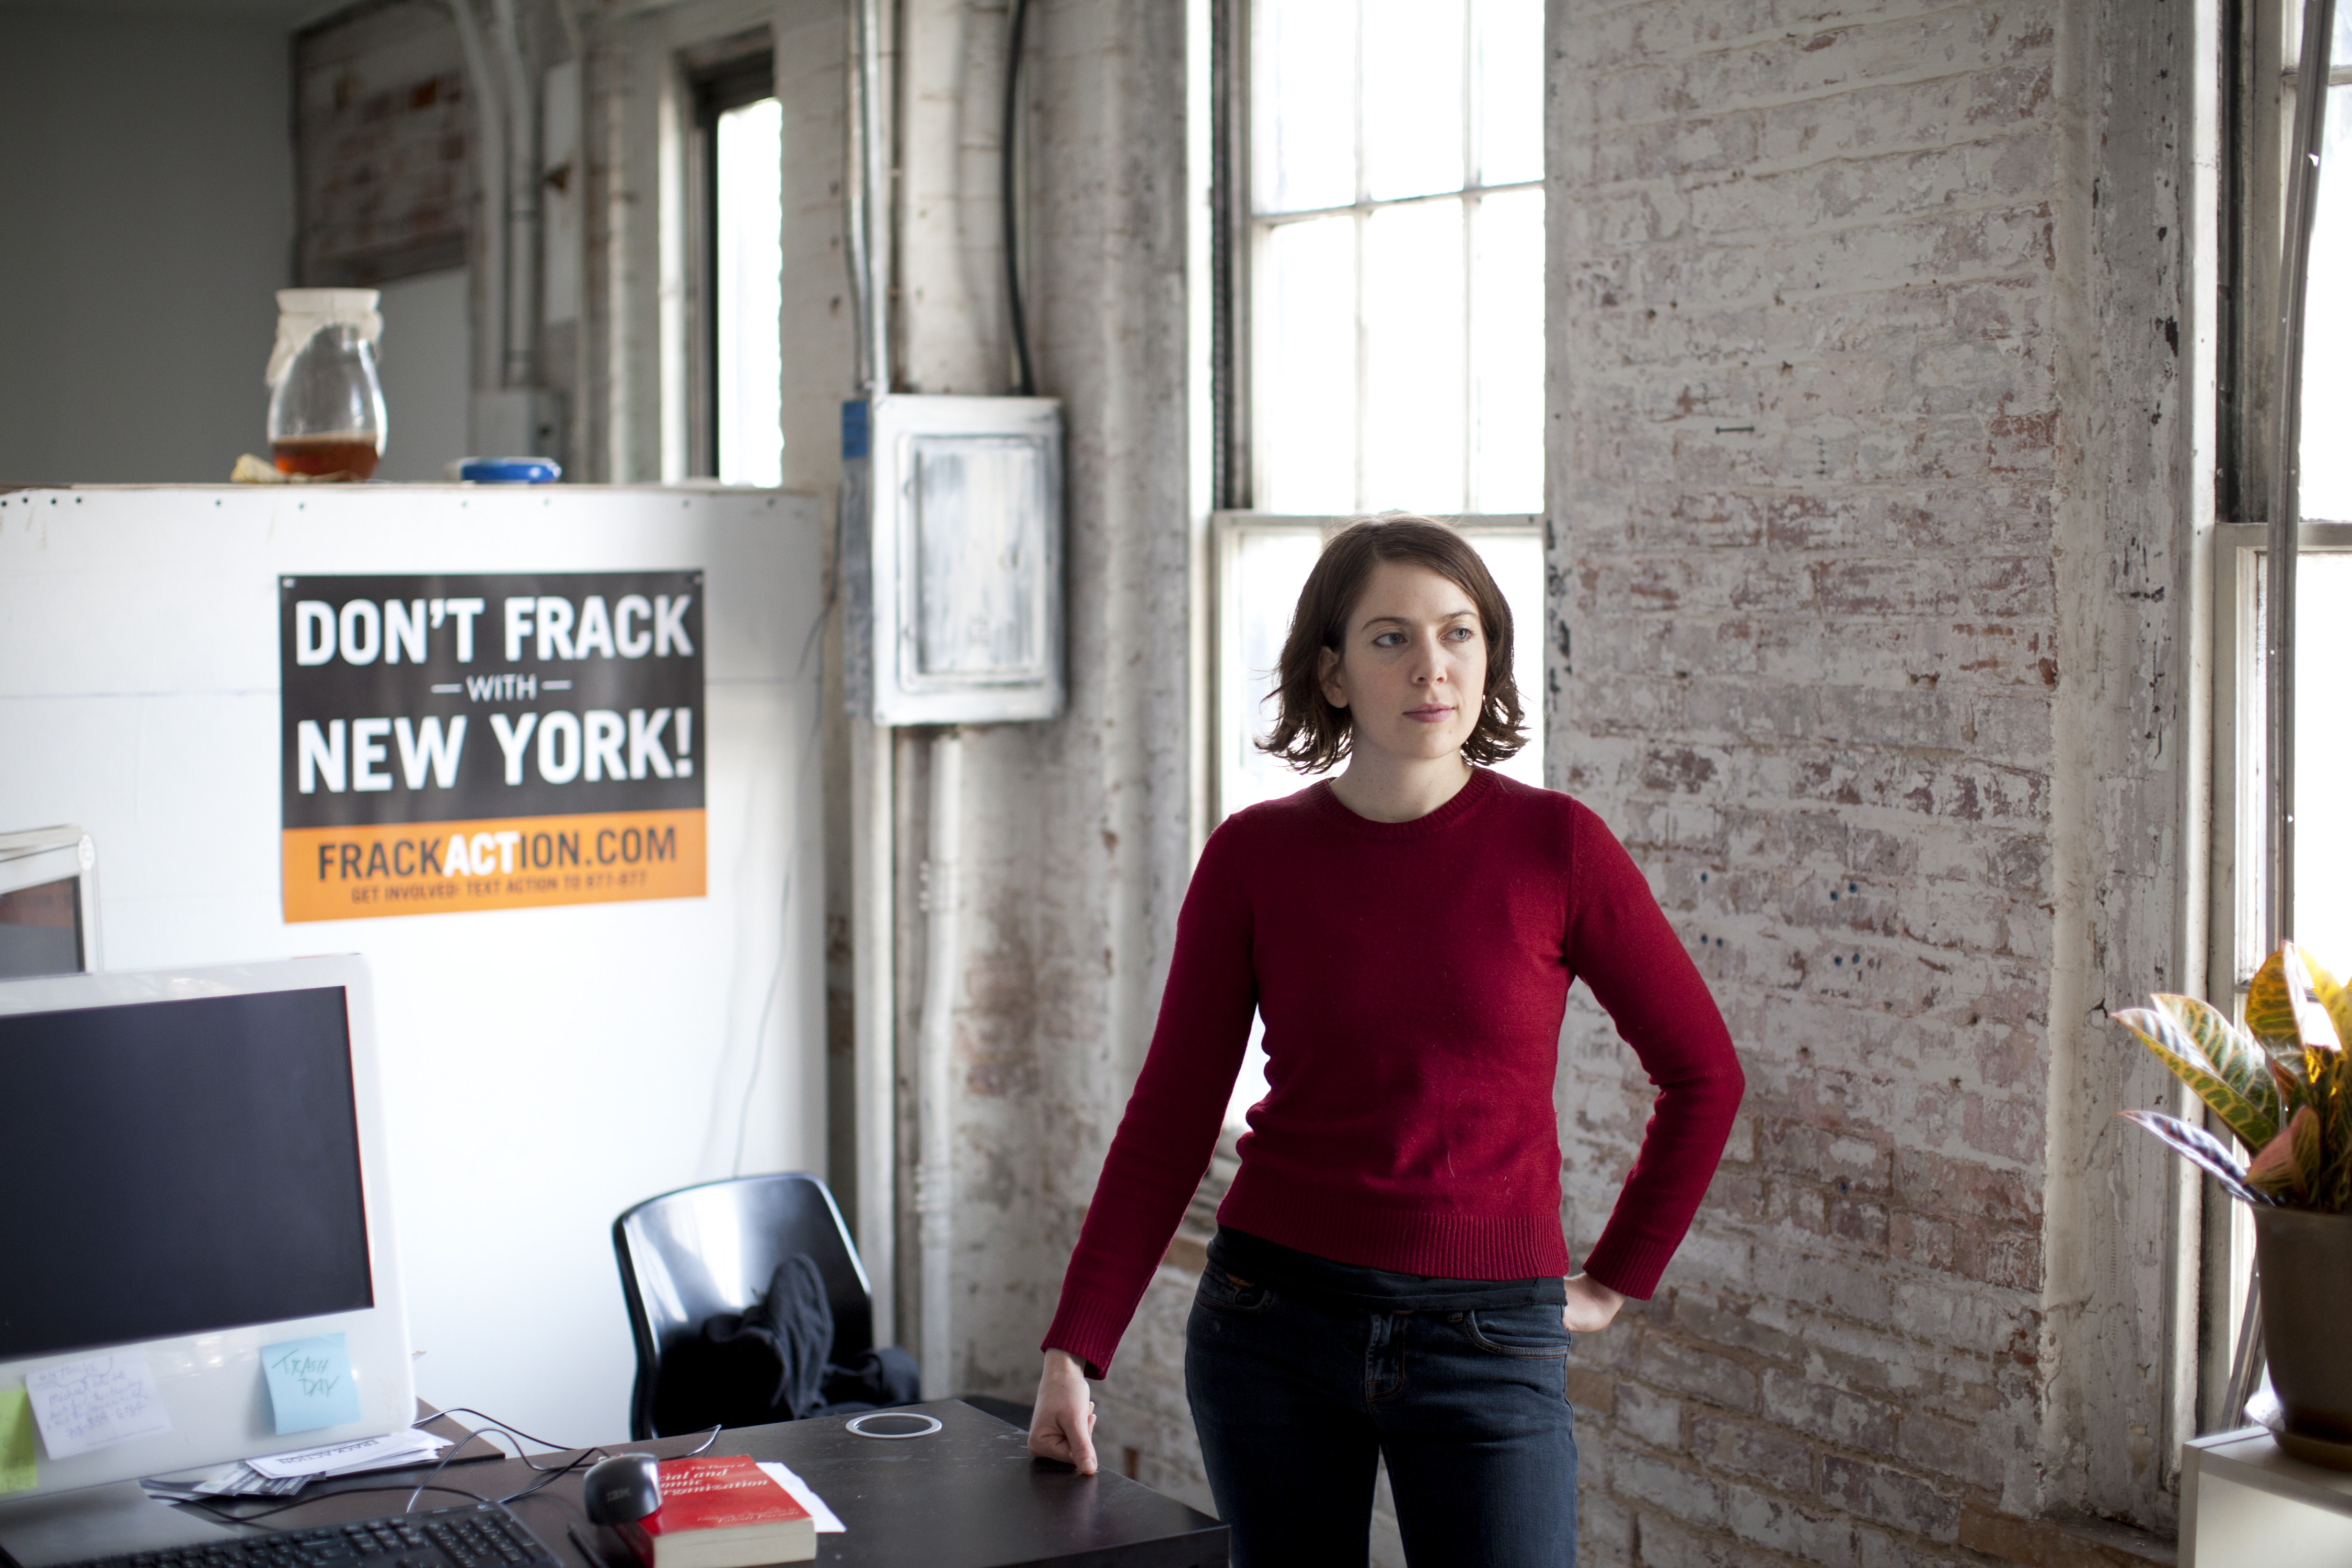 Claire Sandberg, one of the two founders of the grass-roots group Frack Action, in New York, Dec. 22, 2011. With a deadline looming this week for the public to weigh in on gas drilling in New York State, the antifracking movement itself has become divided over if its goal should be securing the nation's toughest regulations, or winning an outright ban. (Todd Heisler/The New York Times)